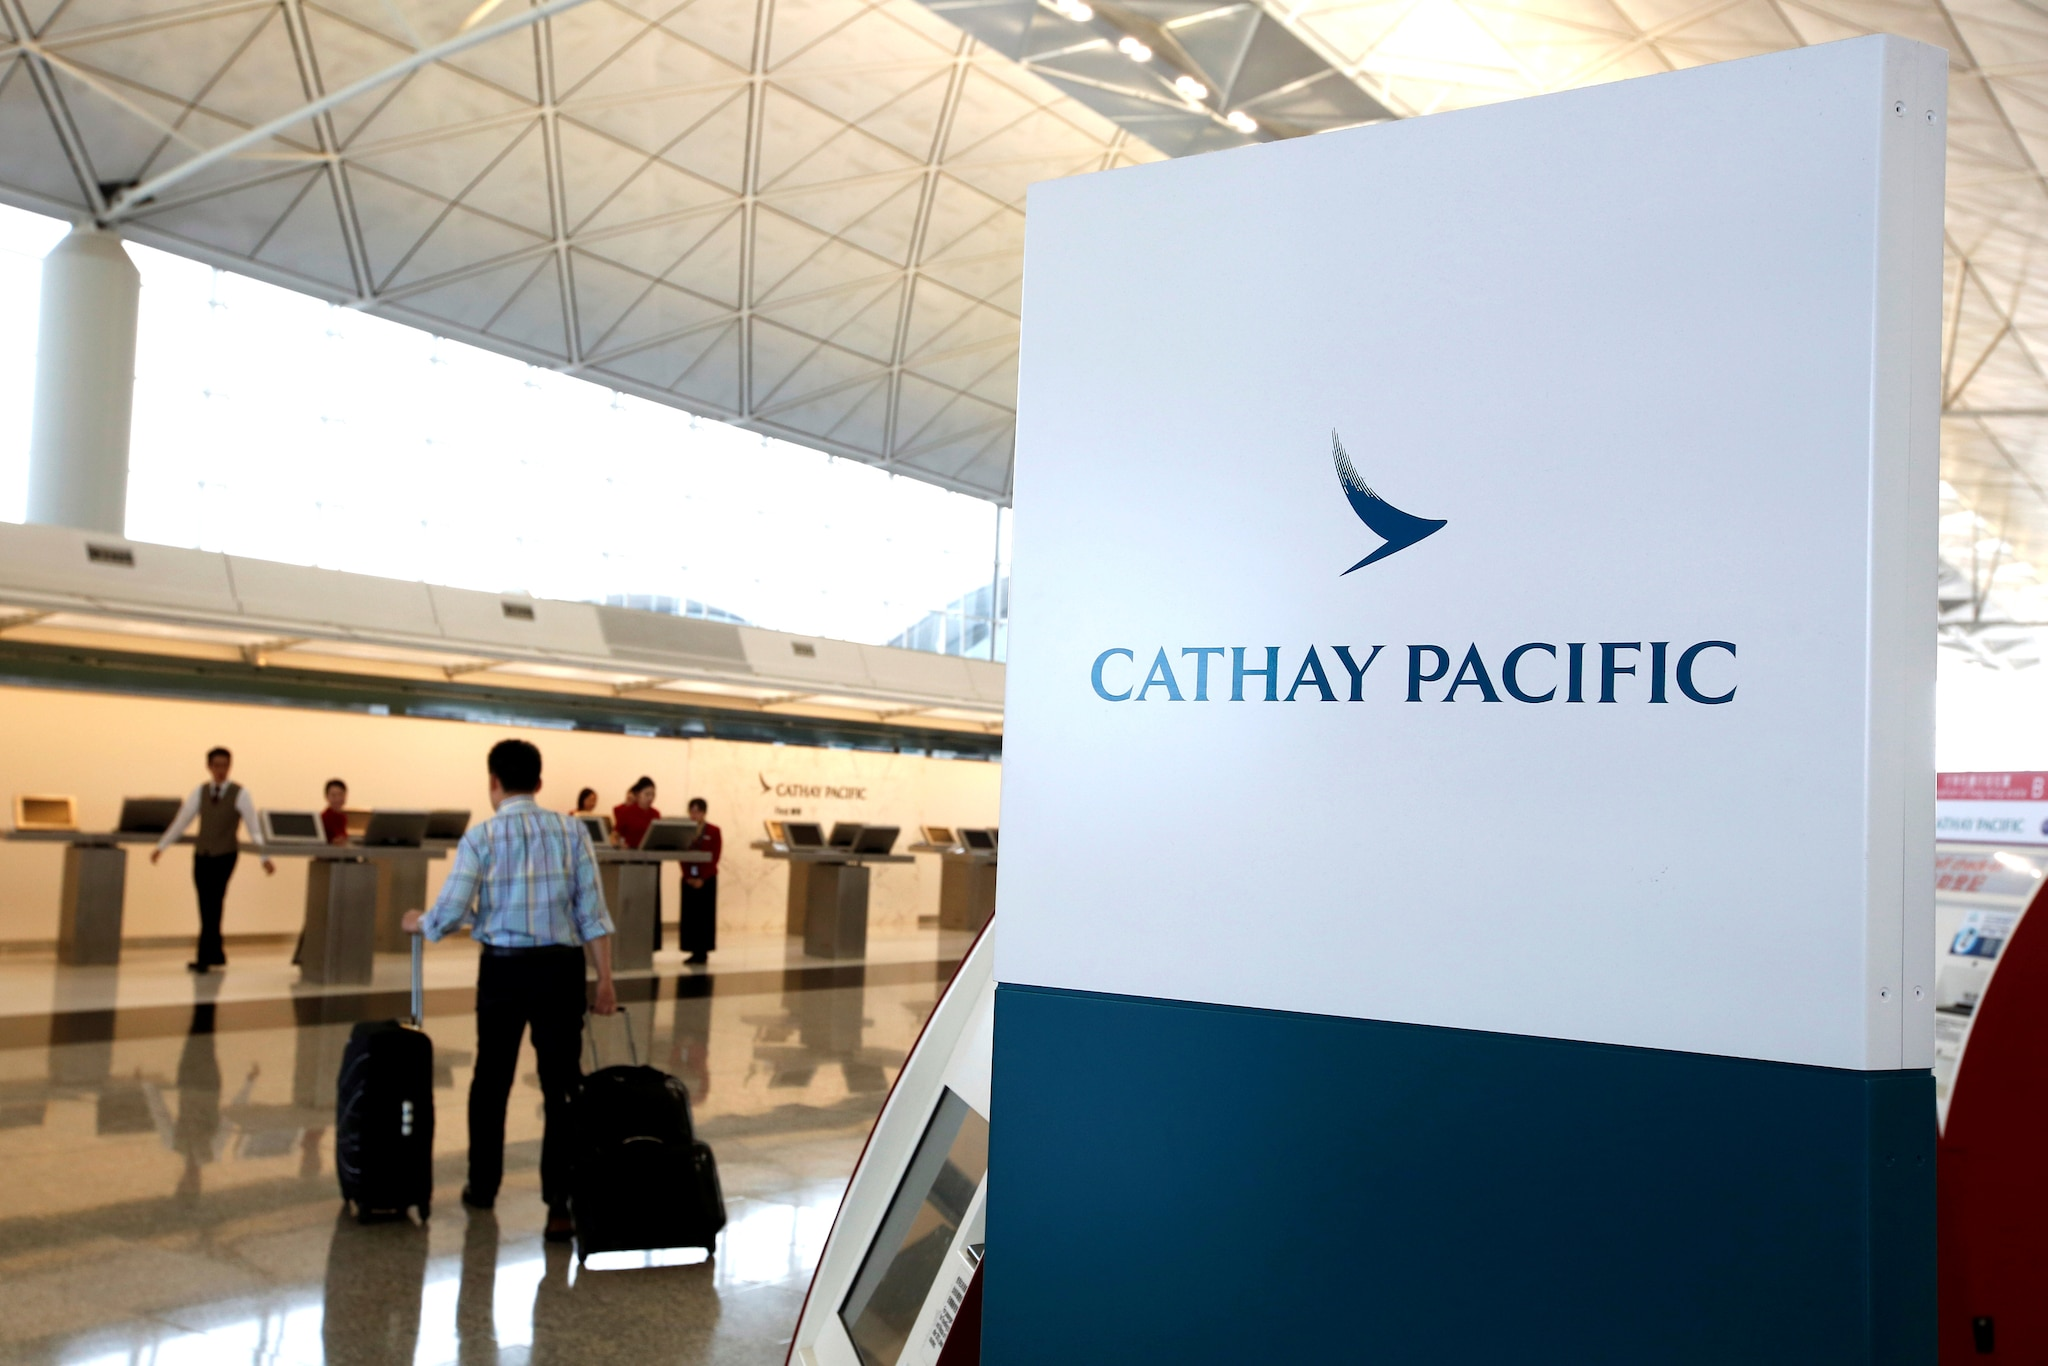 <strong>#4. Cathay Pacific:</strong> The airline runs subsidiaries Cathay Dragon, Asia Miles, Air Hong Kong, among others. Cathay Pacific operates in 77 destinations across the globe. (Reuters)